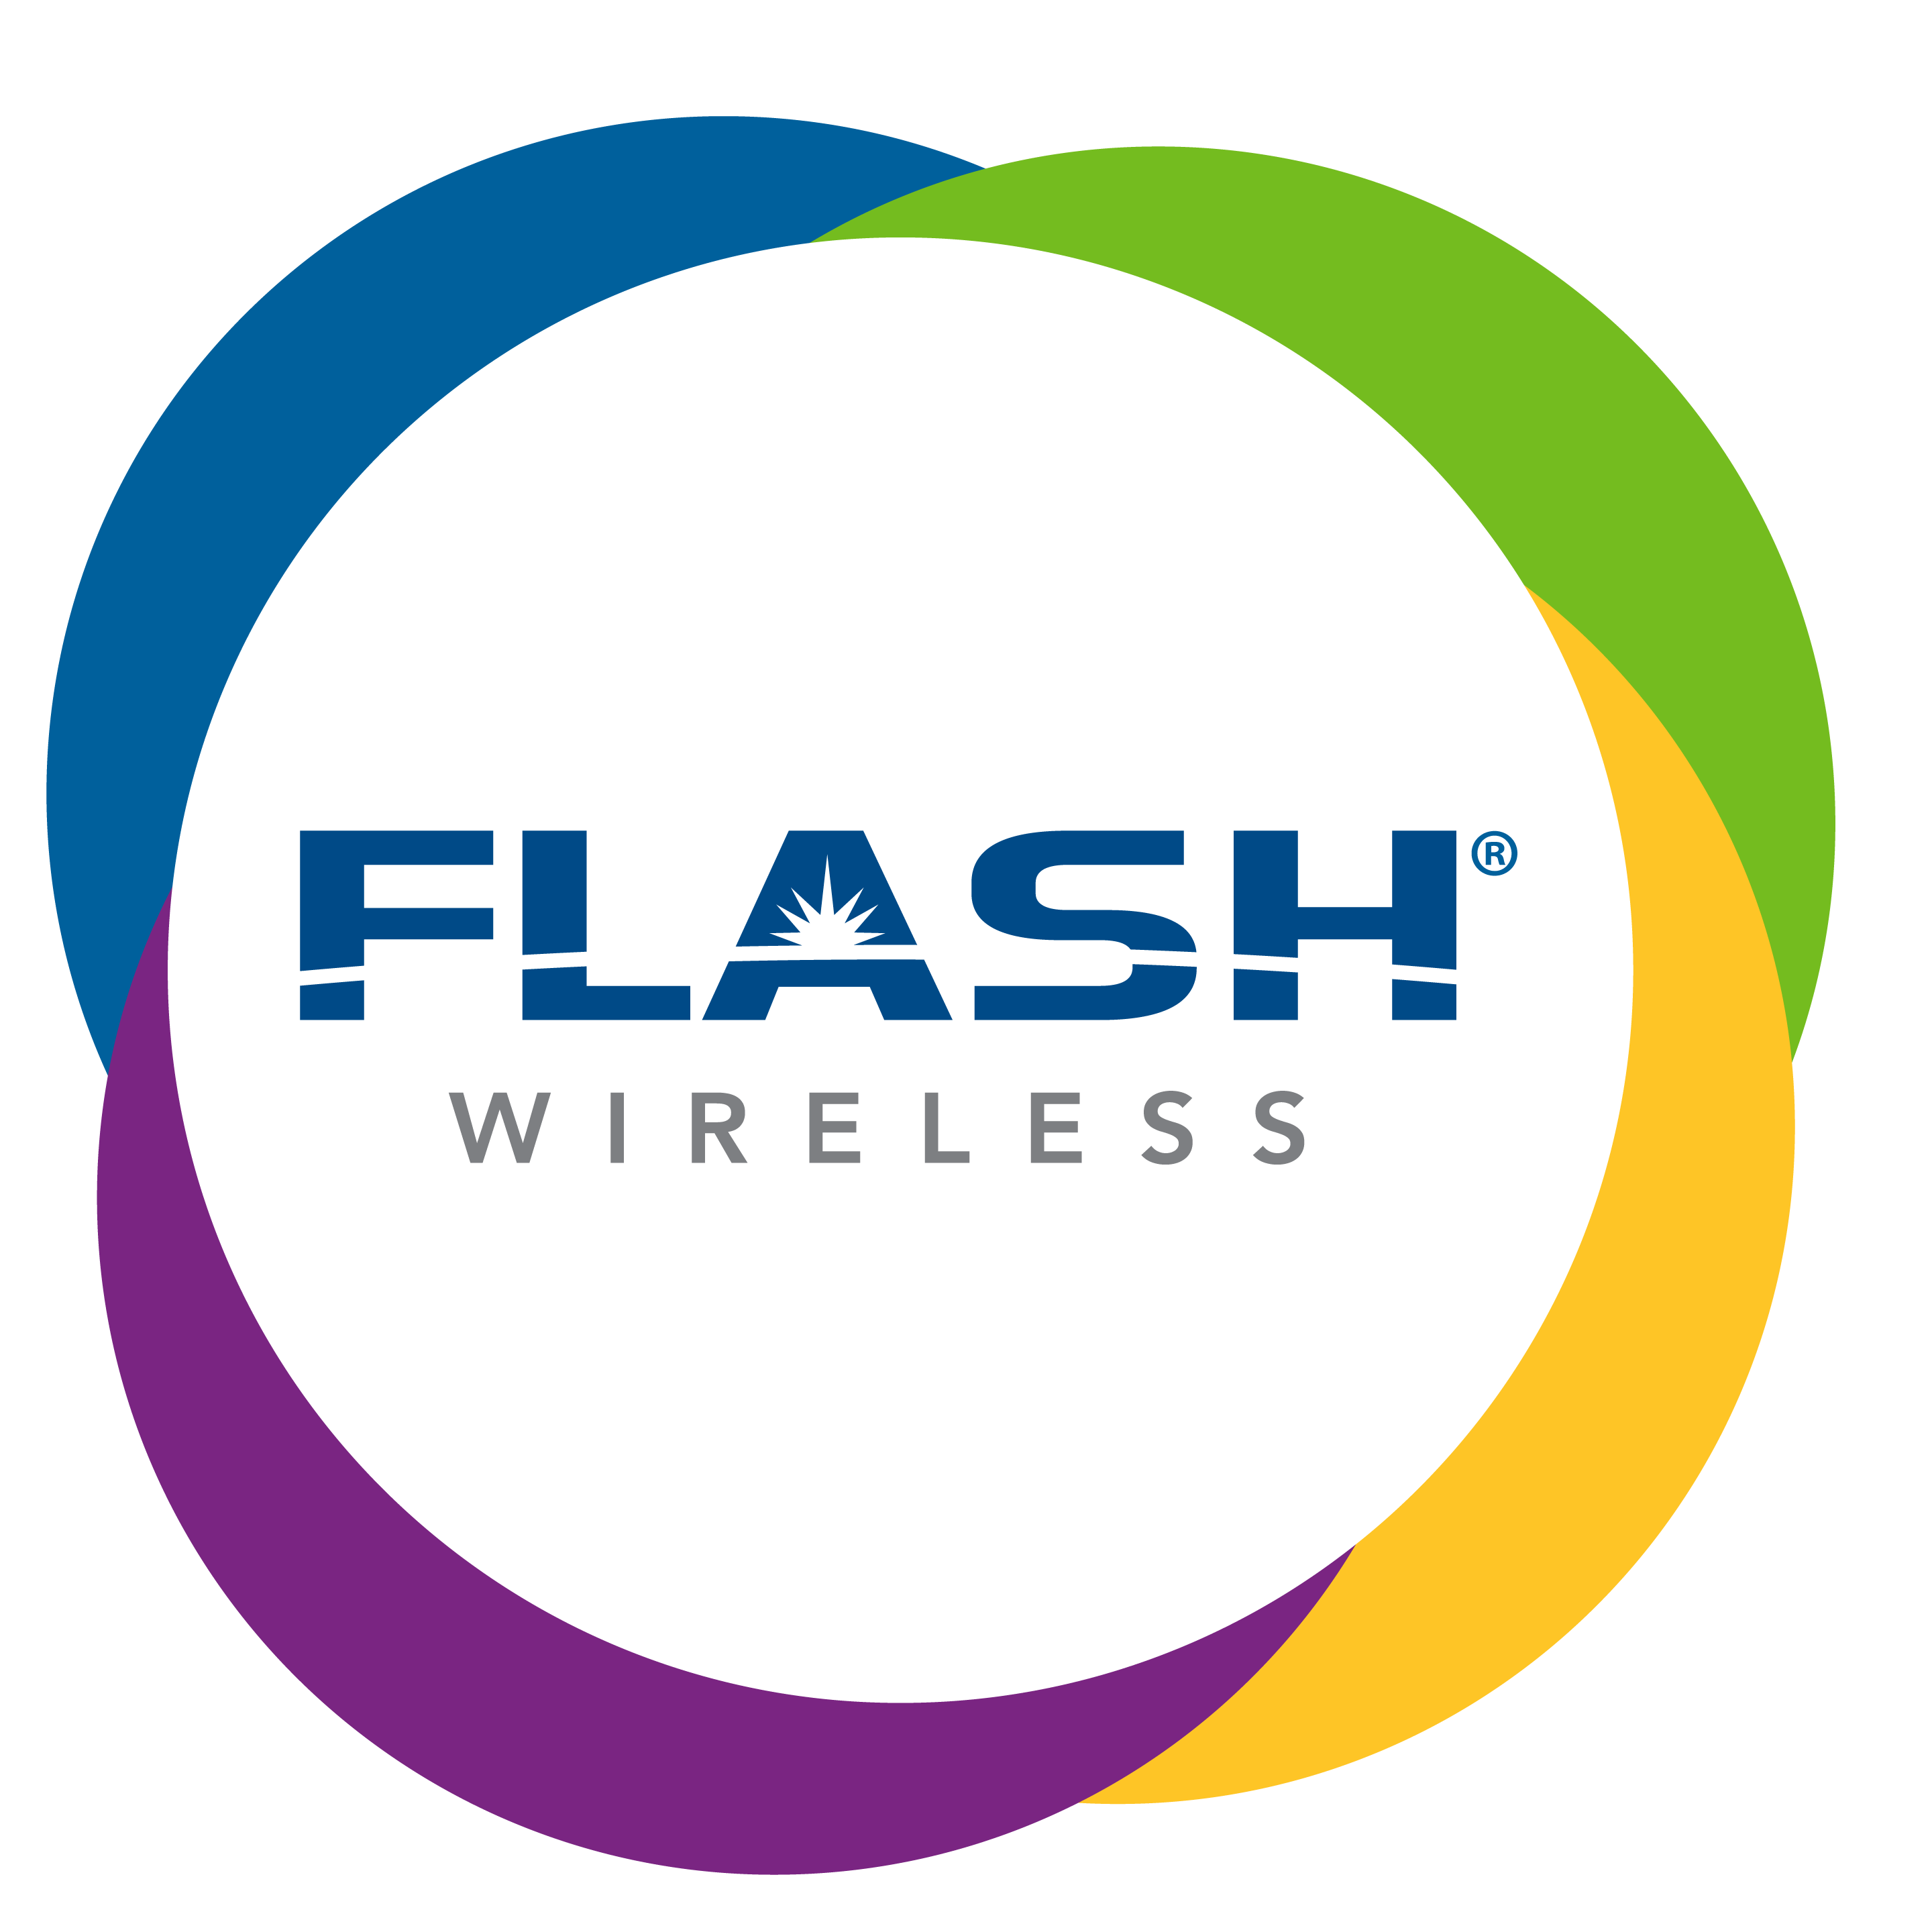 Flash Wireless logo